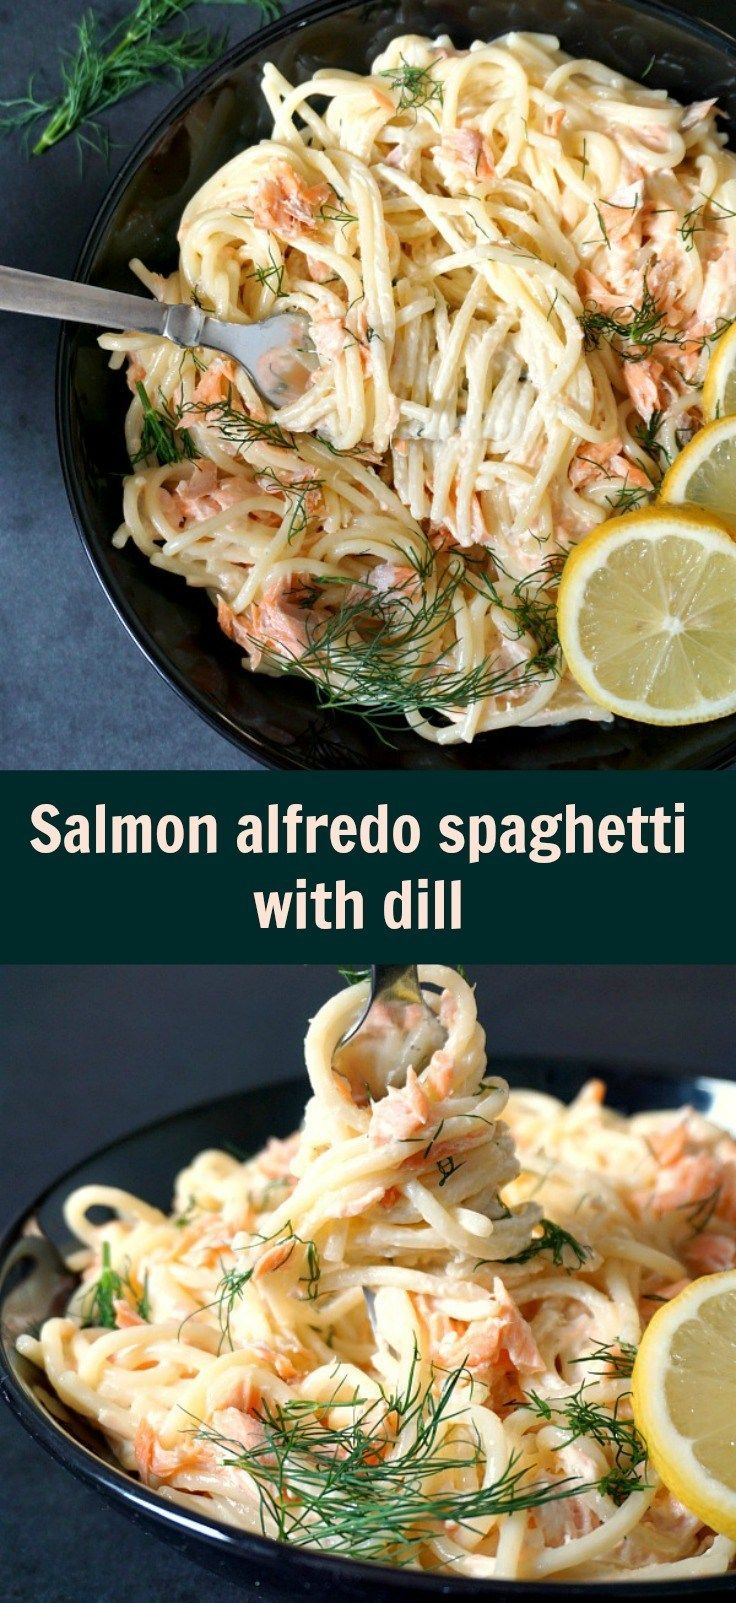 Salmon alfredo pasta with dill, a delicious under 30-minute recipe that makes a lovely dinner with the family.